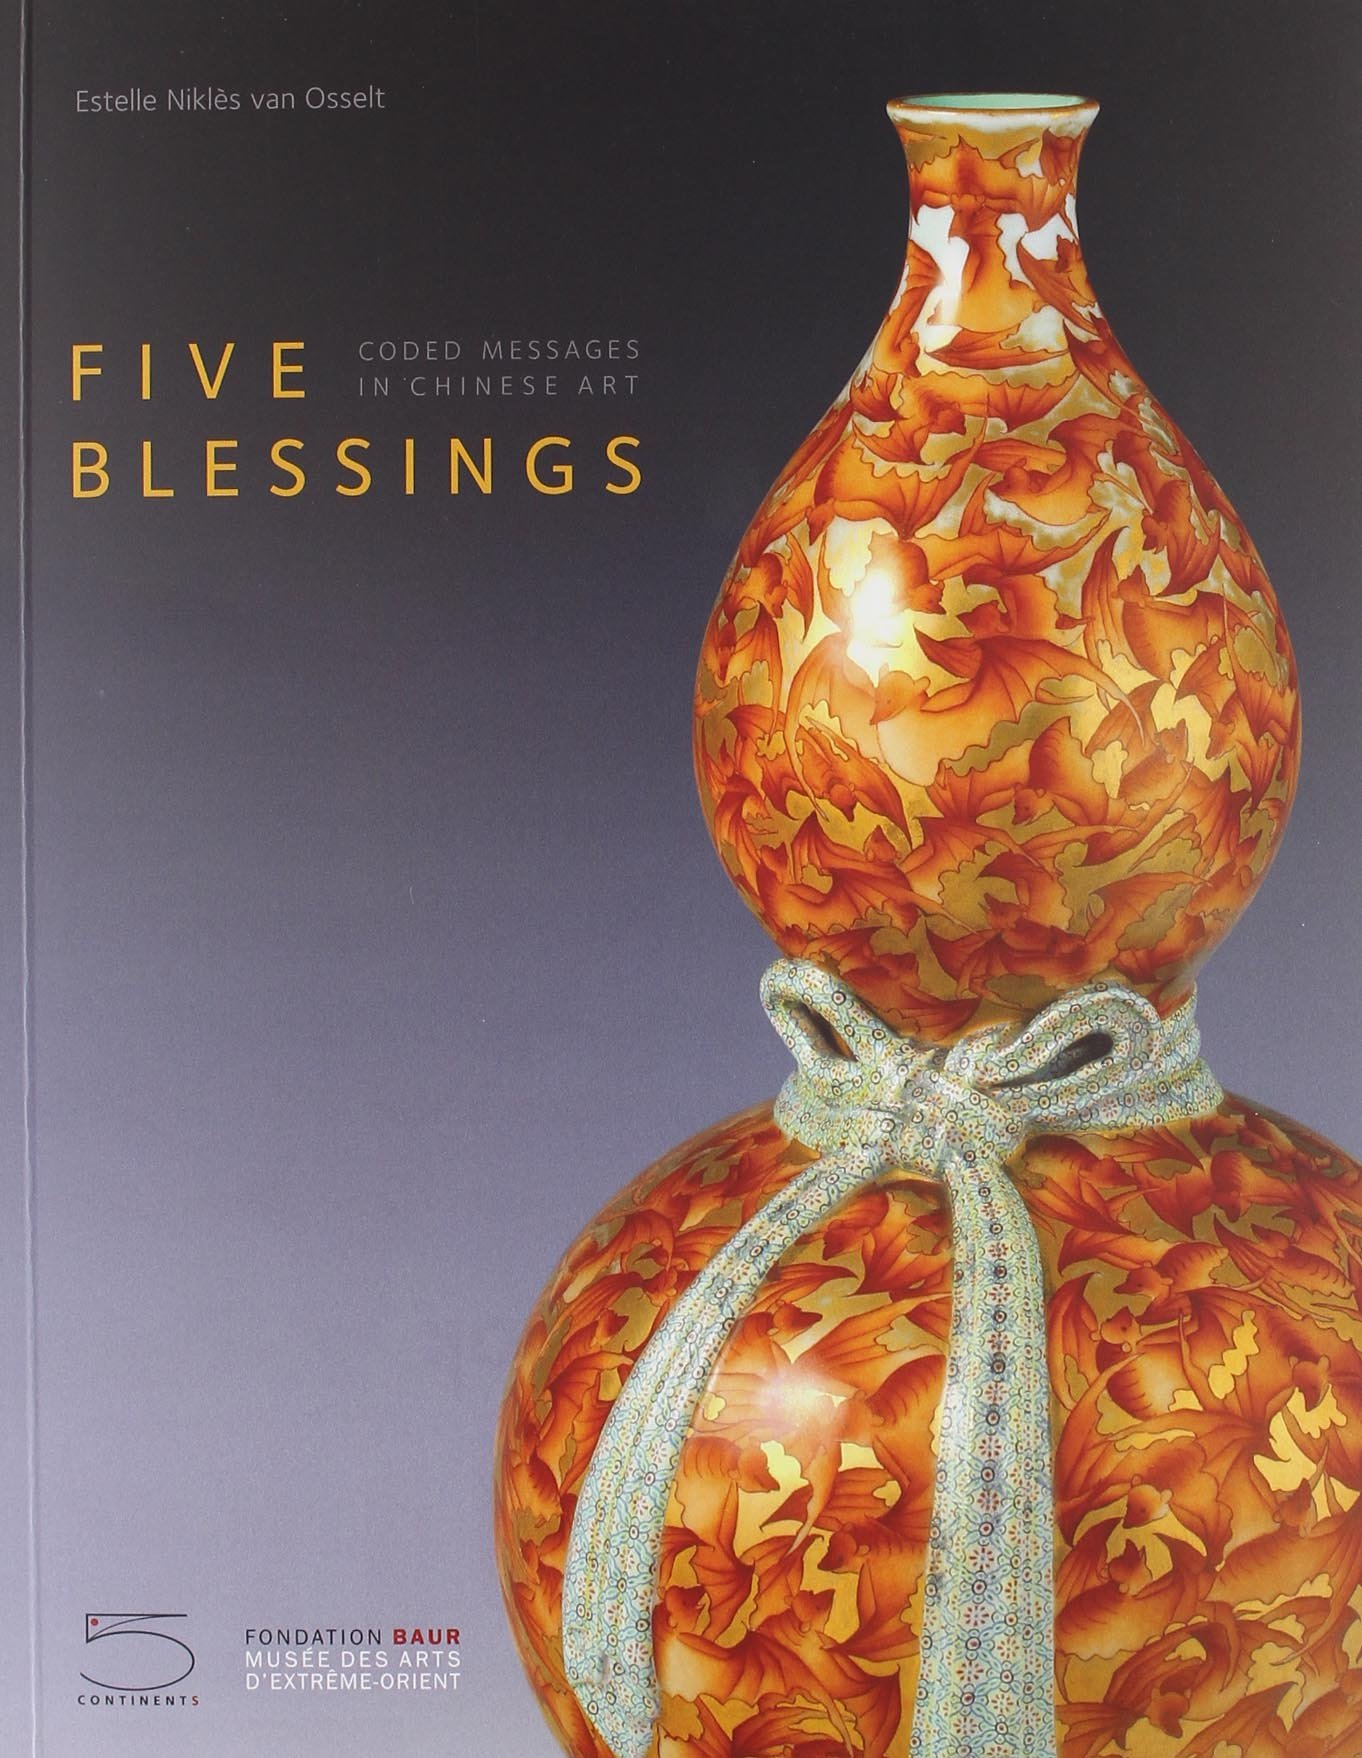 Read Online Five Blessings: Coded Messages in Chinese Art PDF